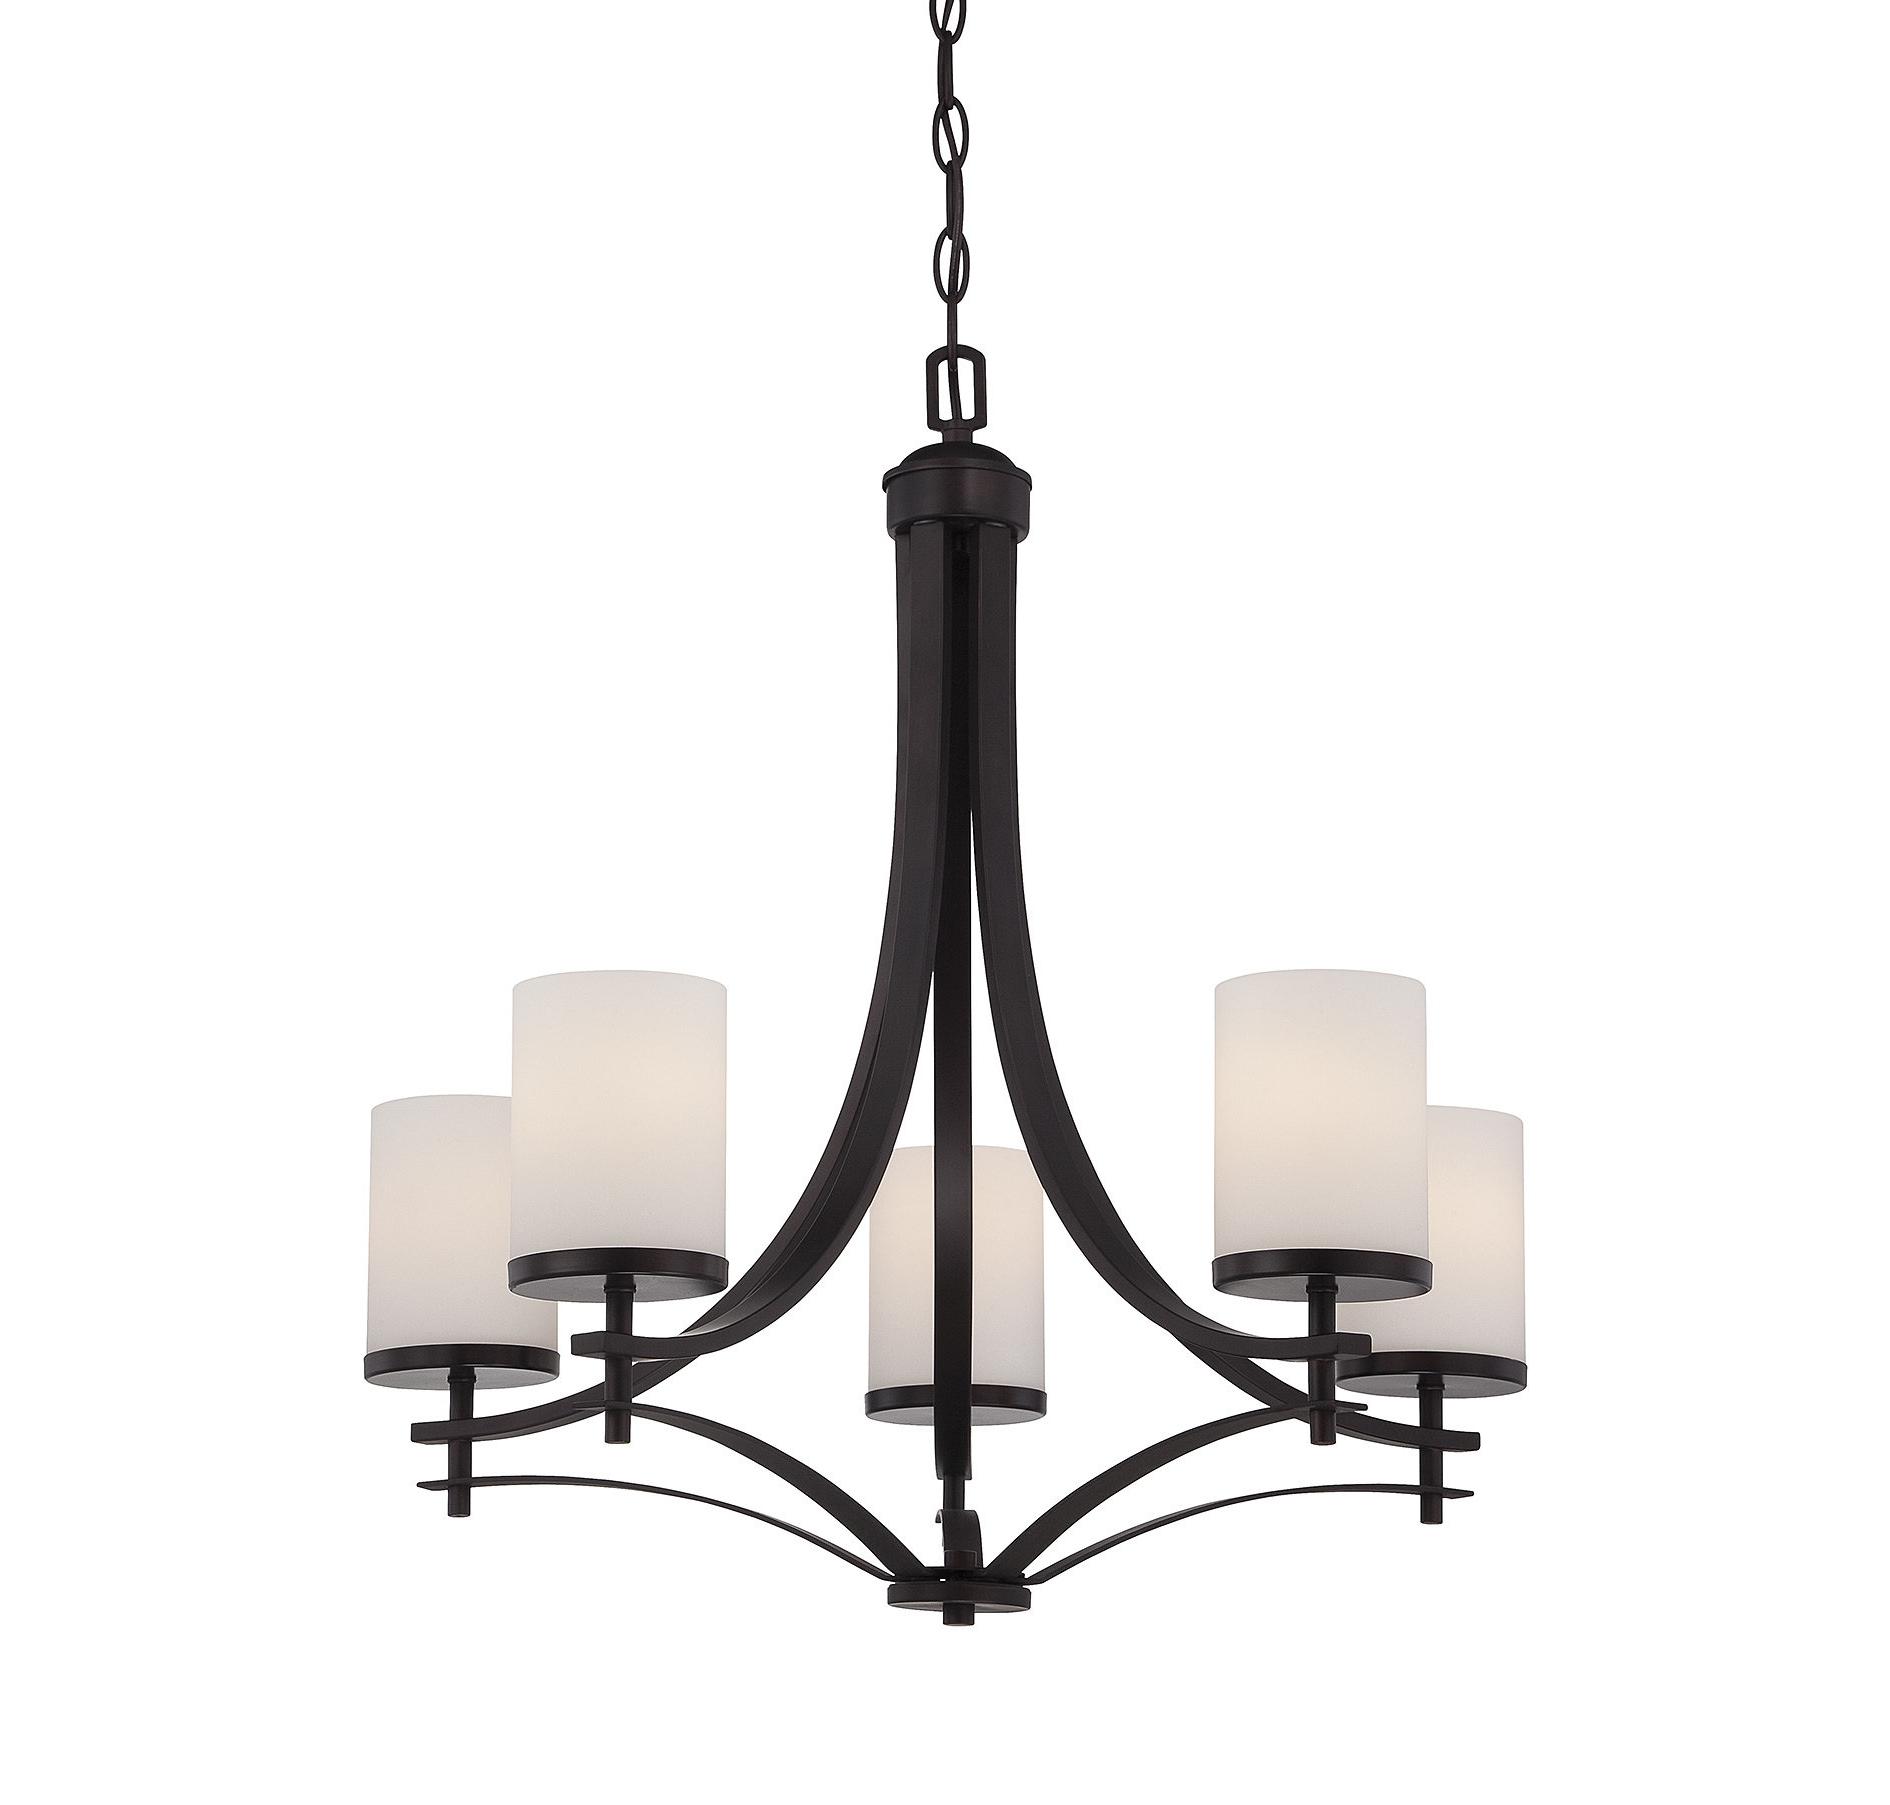 Agnes 5 Light Shaded Chandelier With Regard To Most Up To Date Suki 5 Light Shaded Chandeliers (View 3 of 25)